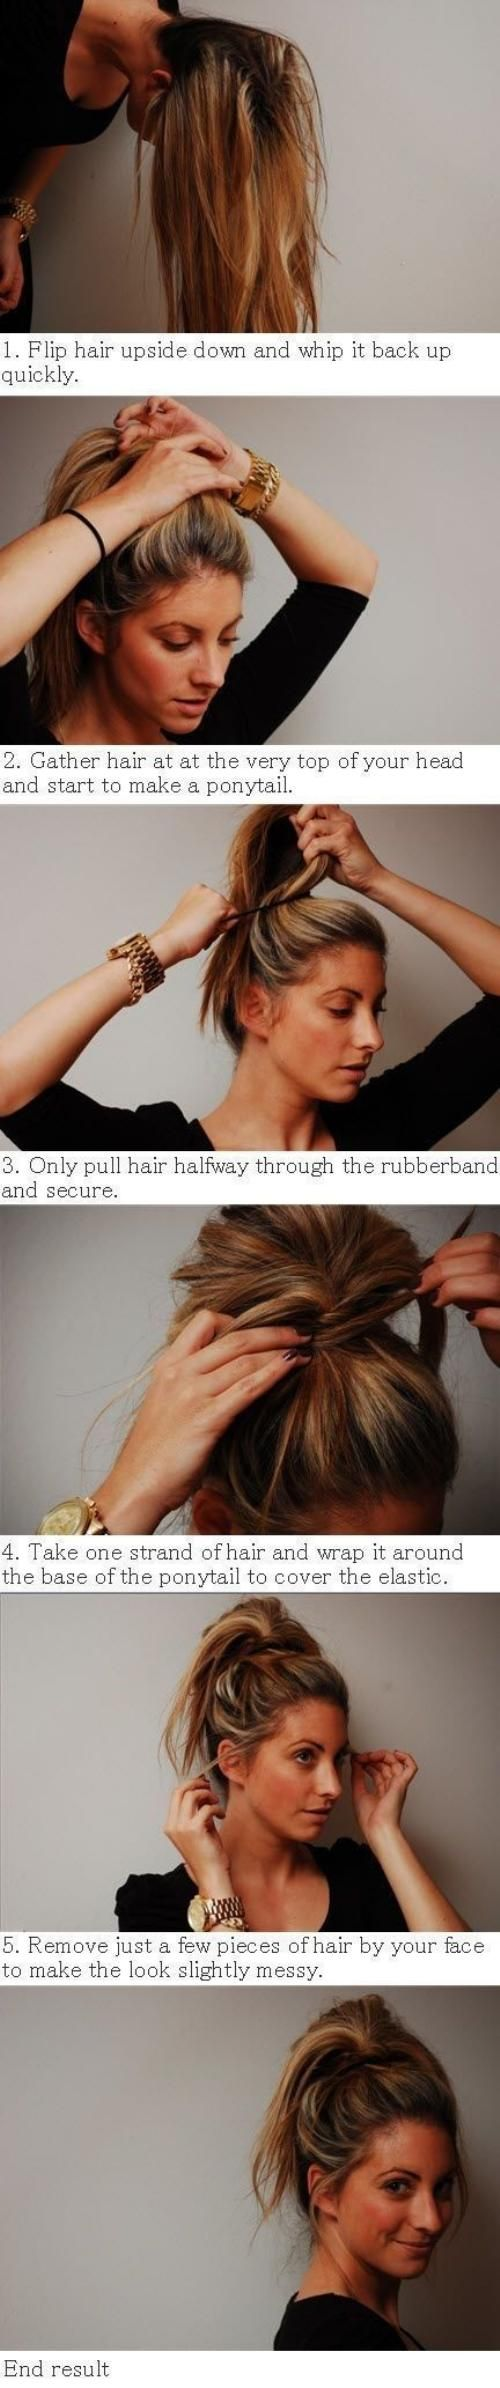 For when my hair gets long enough... X) 26 Do it yourself hair-styles